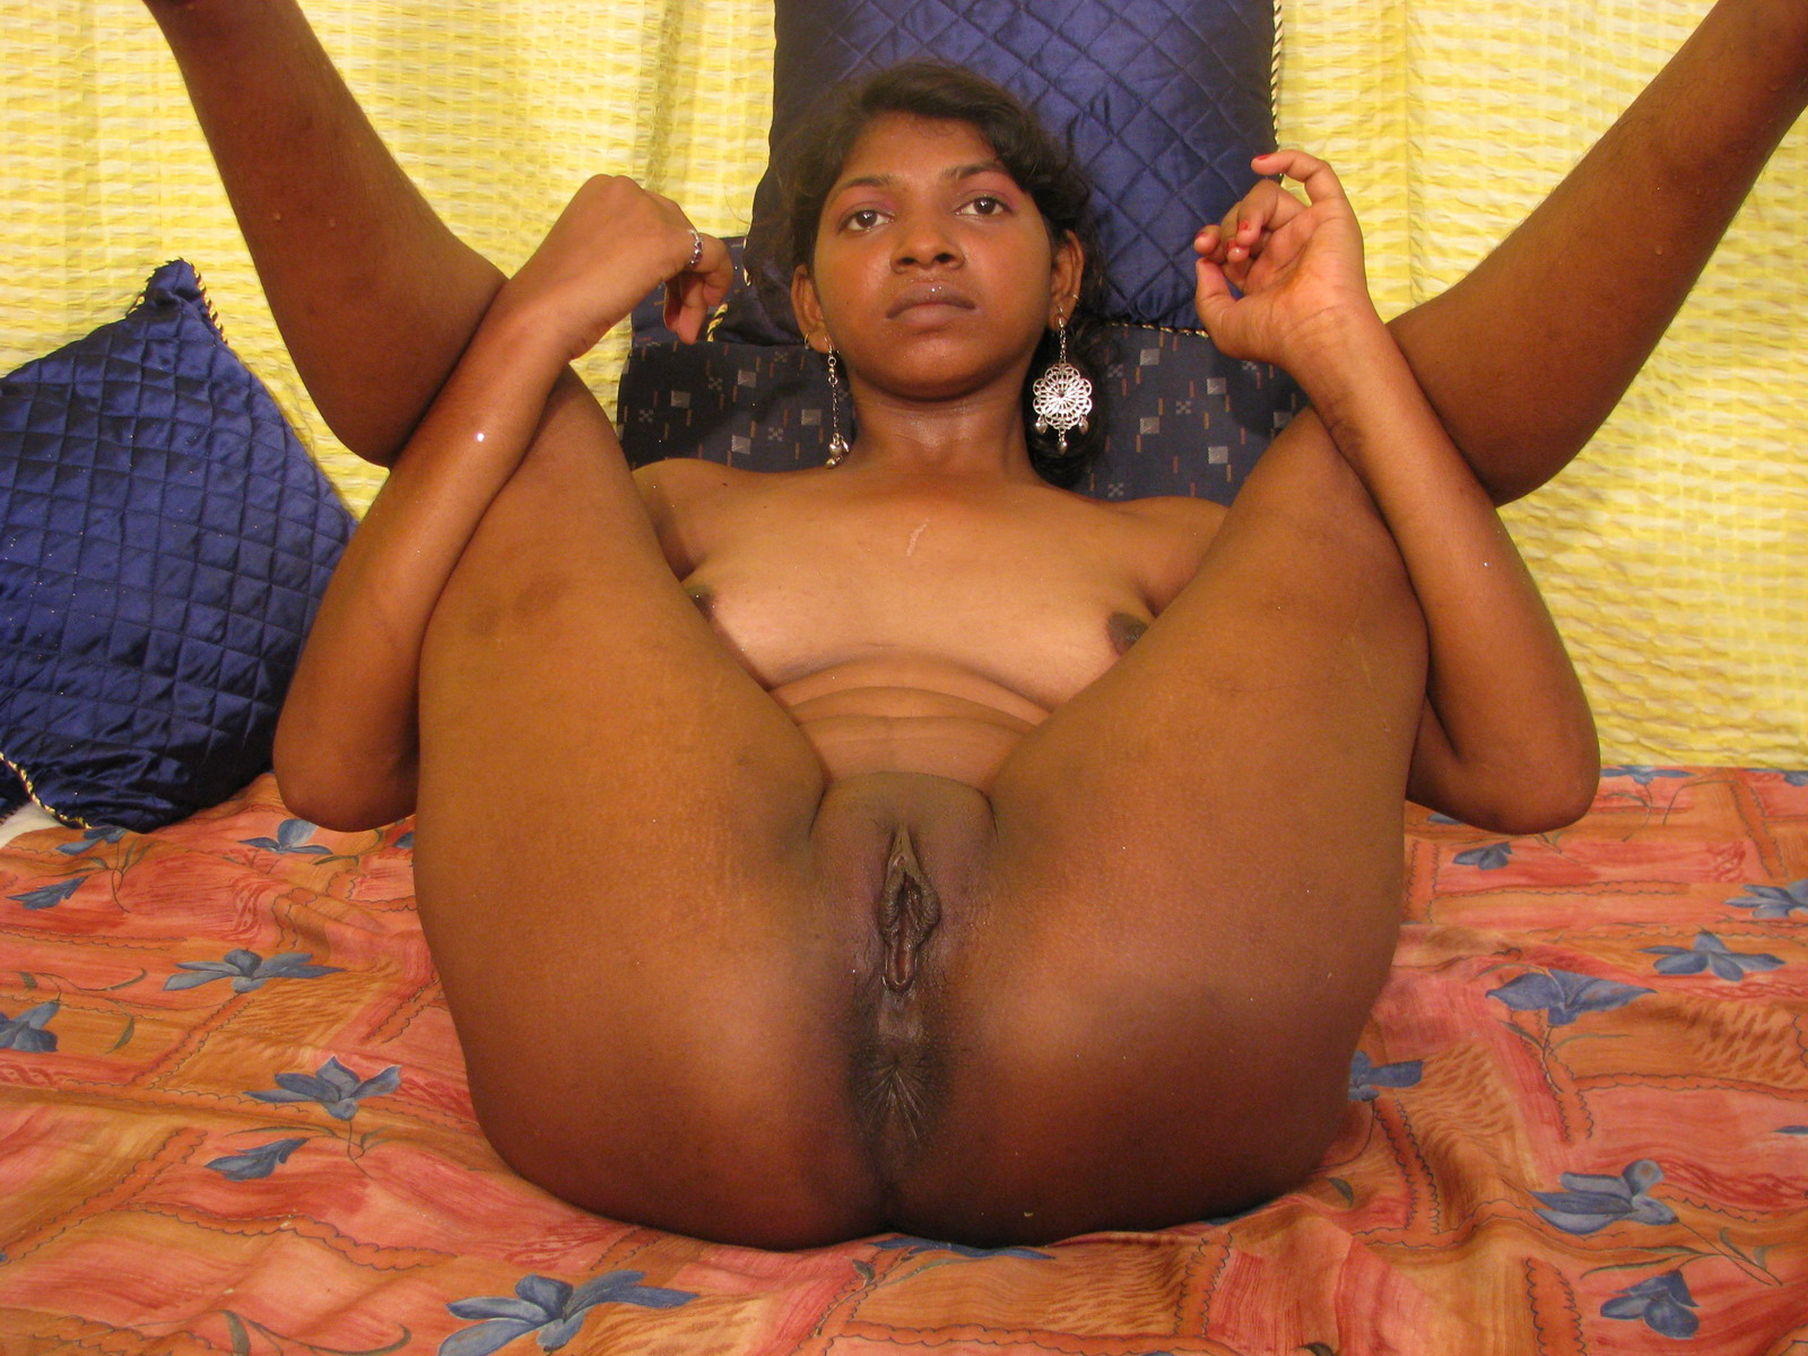 Grany porn photos indian well